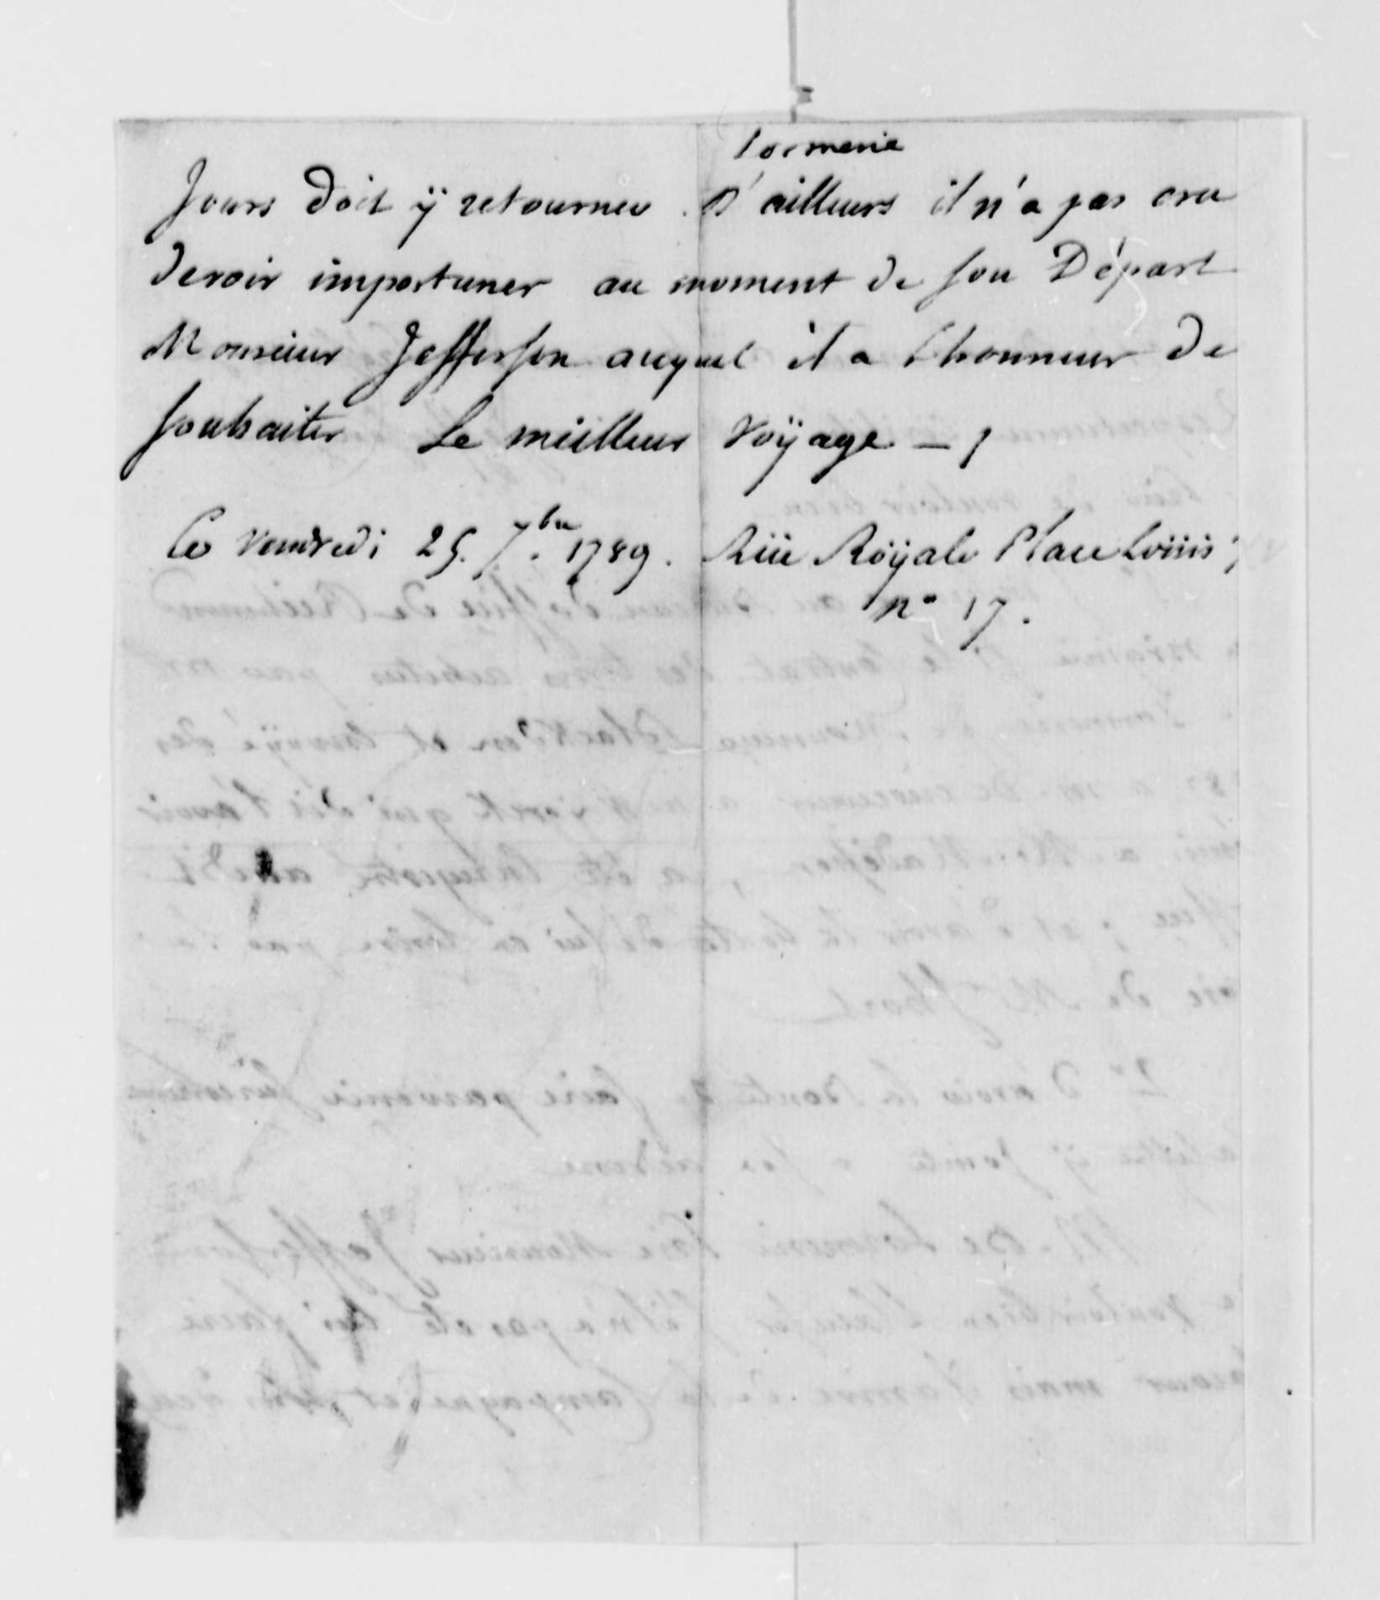 De Lormerie to Thomas Jefferson, September 25, 1789, in French